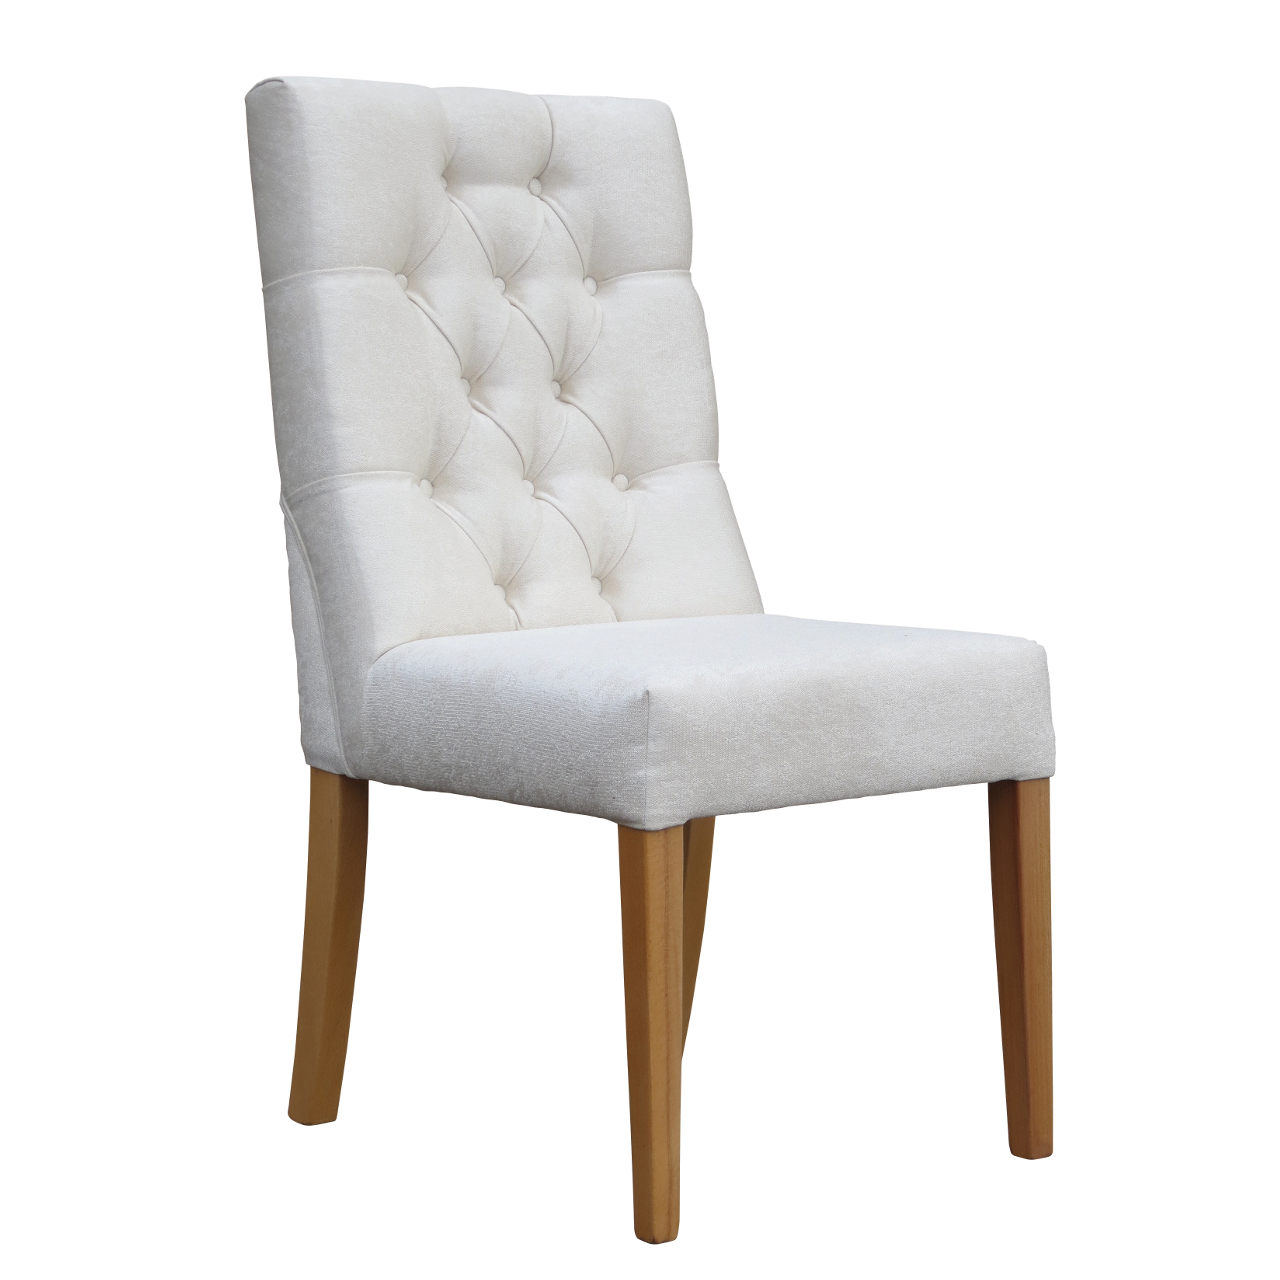 Byron chair Cleo Luxury button back chair, elegant